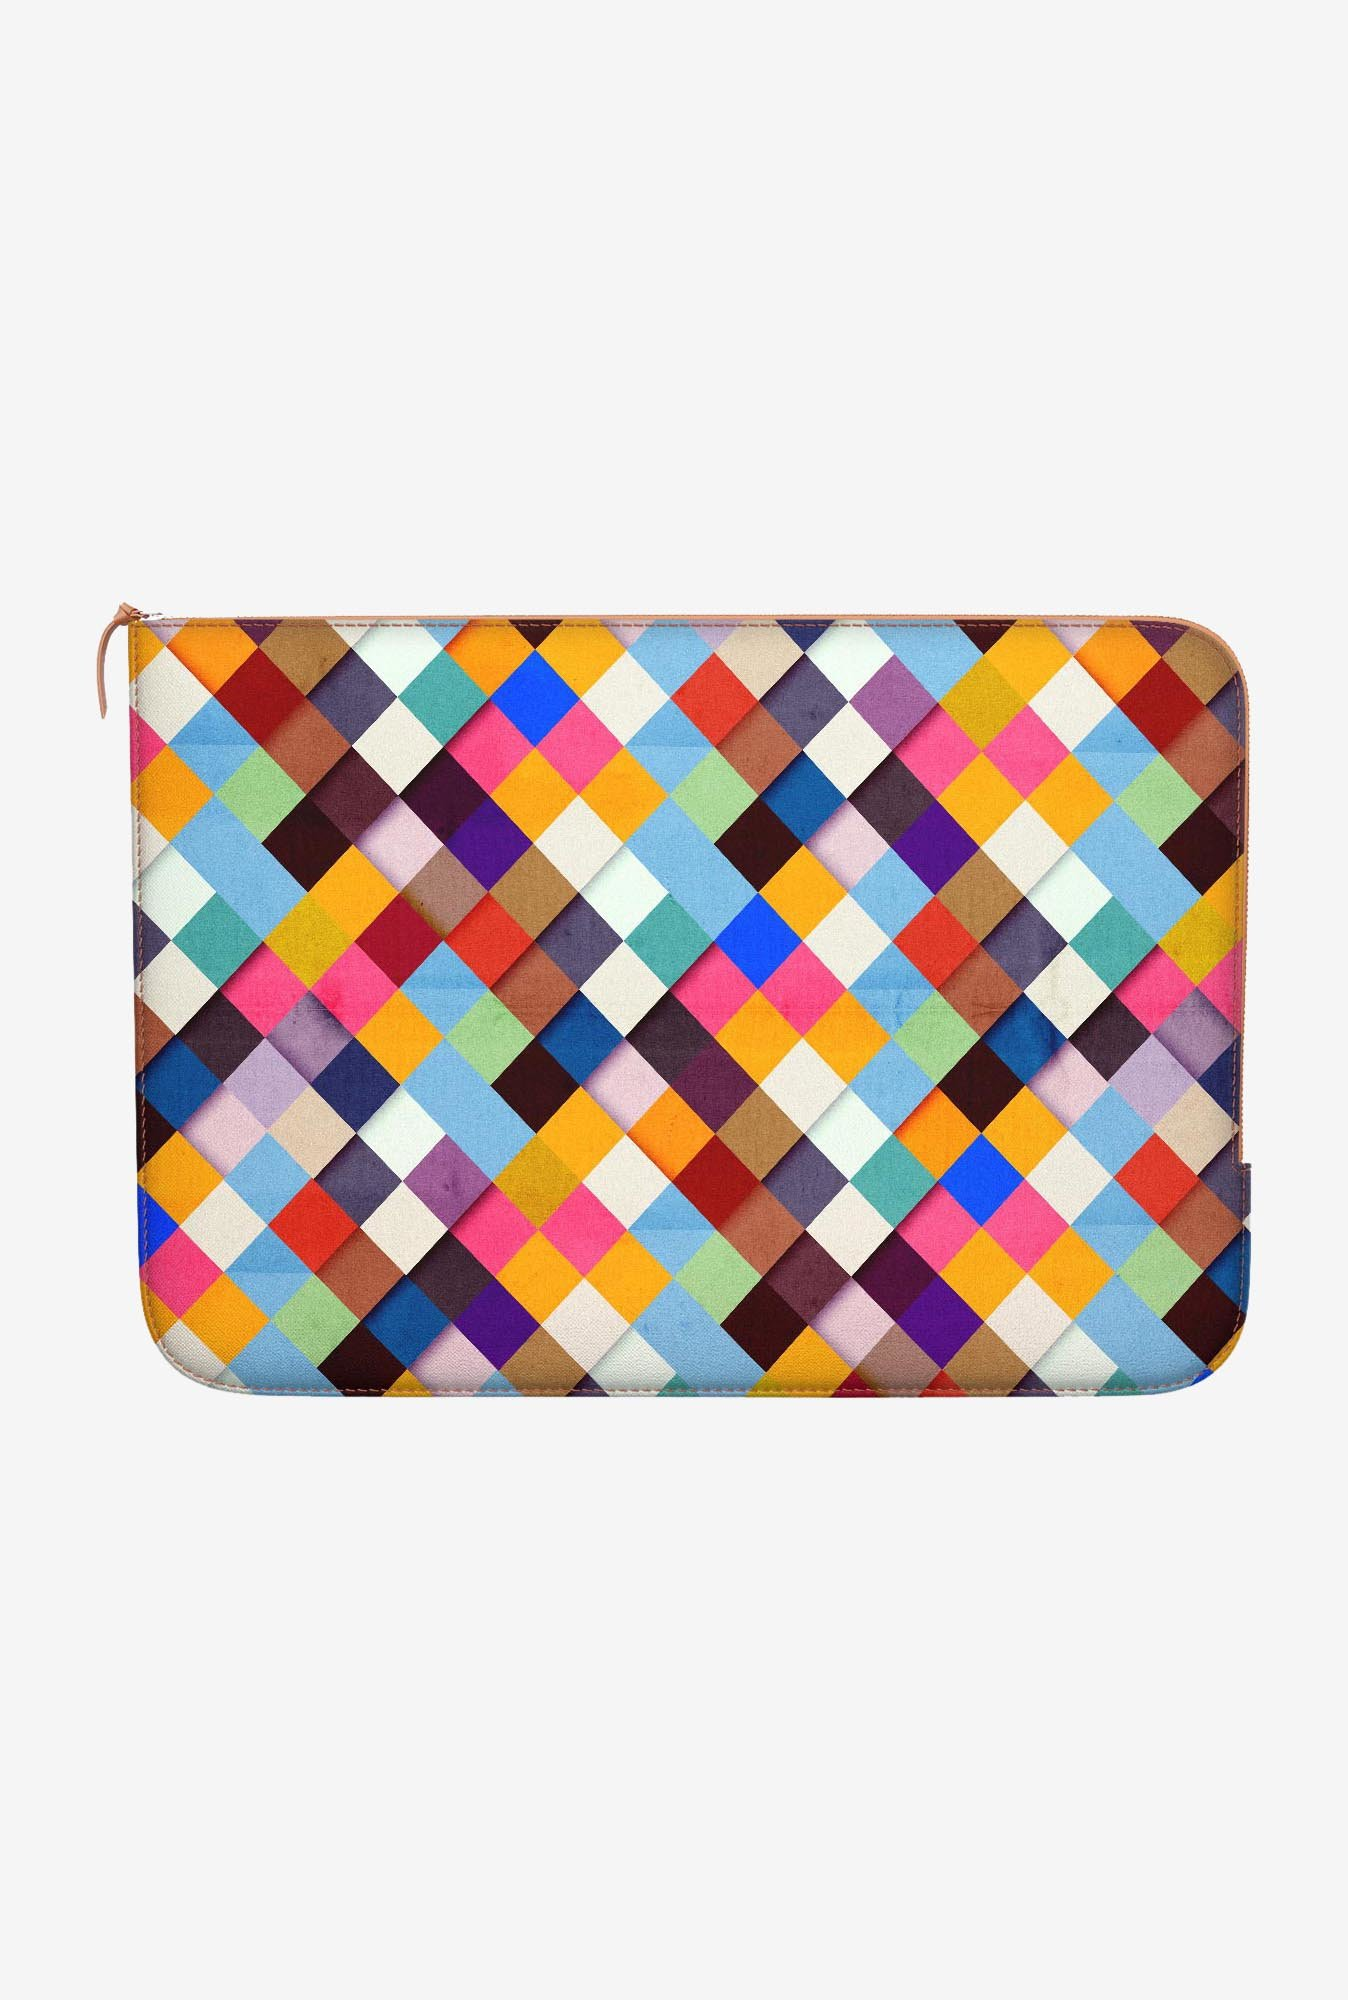 DailyObjects Pass this Bold MacBook Pro 13 Zippered Sleeve